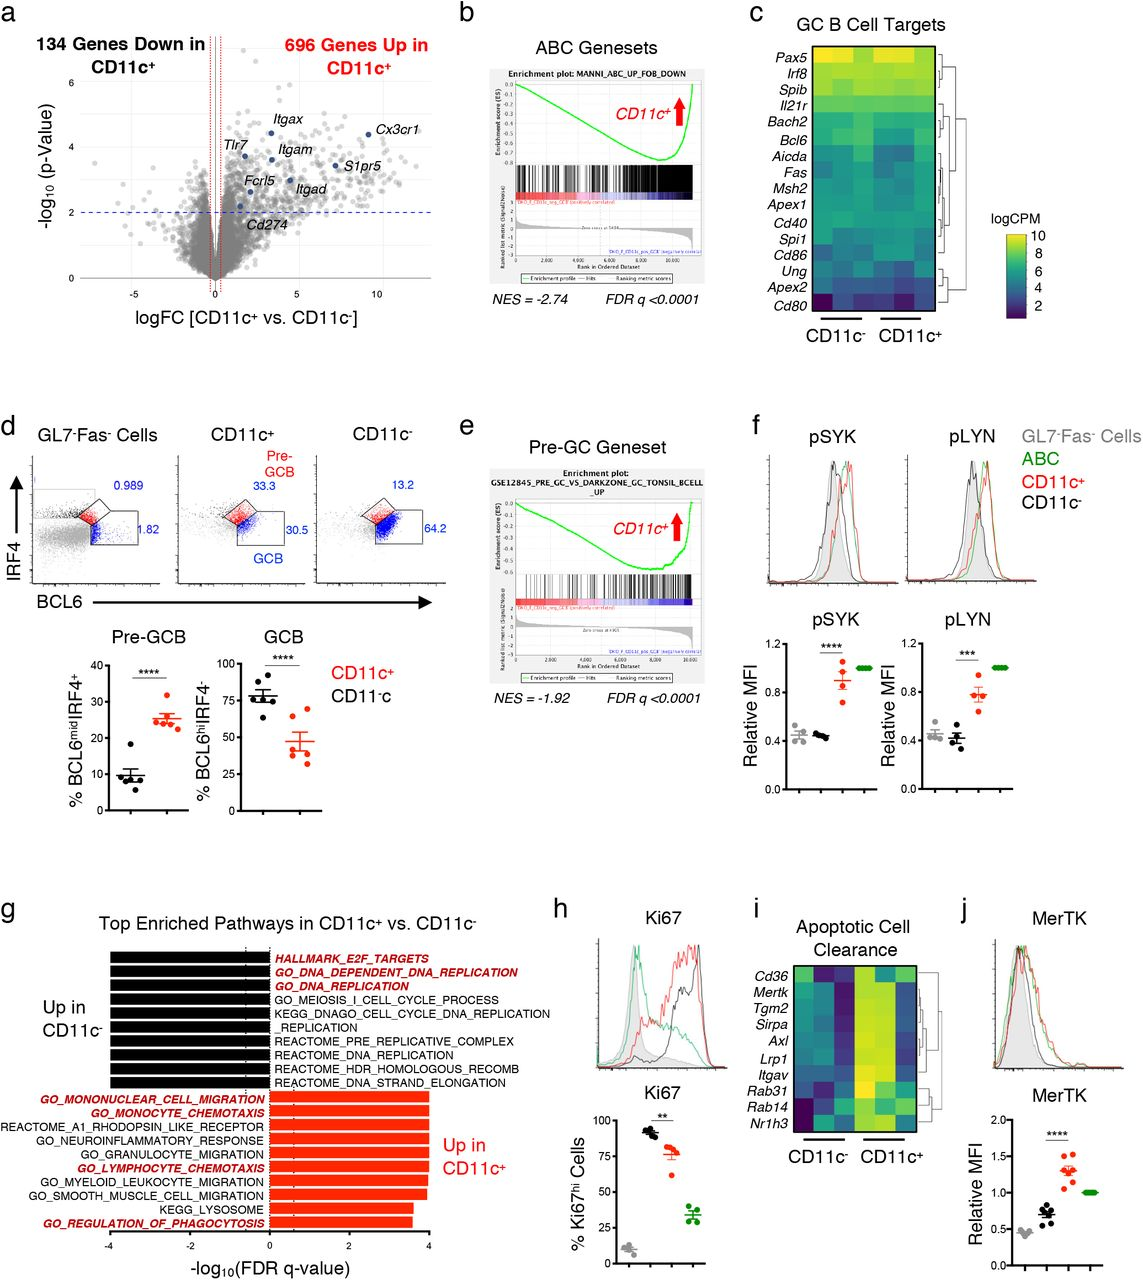 (A) Representative histograms and quantifications of Fcrl5, Tbet, Cxcr3, CD11b, IgM, IgD, and CD44 expression in CD11c + CD19 + GL7 + Fas + cells (CD11c + ) ( red ), CD11c − CD19 + GL7 + Fas + cells (CD11c − ) (black) , and CD19 + CD11c + CD11b + (ABCs) (green) from DKO(F) mice. CD19 + Fas − GL7 − cells are shown as a control (gray) . Data representative of and/or pooled from at least 6 mice and show mean +/− SEM; p-value by 1-way ANOVA followed by Tukey's test for multiple comparisons. (B) Plot showing the enrichment of an ABC geneset from SLE patients in CD11c + CD19 + GL7 + CD38 lo cells 15 . (C) Plot showing the enrichment of the HALLMARK_INTERFERON_ALPHA_RESPONSE and the HALLMARK_INTERFERON_GAMMA_RESPONSE genesets in CD11c + CD19 + GL7 + CD38 lo cells. (D) Representative histograms and quantifications of IRF8 and BCL6 in the indicated populations from DKO(F) mice. Data representative of and/or pooled from at least 6 mice and show mean +/− SEM; p-value by 1-way ANOVA followed by Tukey's test for multiple comparisons. (E-F) Splenocytes from aged DKO mice were co-cultured for 3hr with Cypher5E-labeled thymocytes following induction of apoptosis with 50μM Dexamethasone. (E) Representative histograms and quantifications showing the percentage of CD11c + and CD11c − CD19 + GL7 + Fas + cells that engulfed apoptotic thymocytes (Cypher5E + ). Data representative of and/or pooled from 4 DKO(F), 1 DKO(M), and 1 YAA-DKO(M) mice; p-value by paired two-tailed t-test. (F) Representative histogram and quantification of MHC-II expression in CD11c + CD19 + GL7 + Fas + B cells that engulfed (red ) or did not engulf (blue) apoptotic thymocytes. Data representative of and/or pooled from 6 mice as in Fig. 5E ; p-value by paired two-tailed t-test.